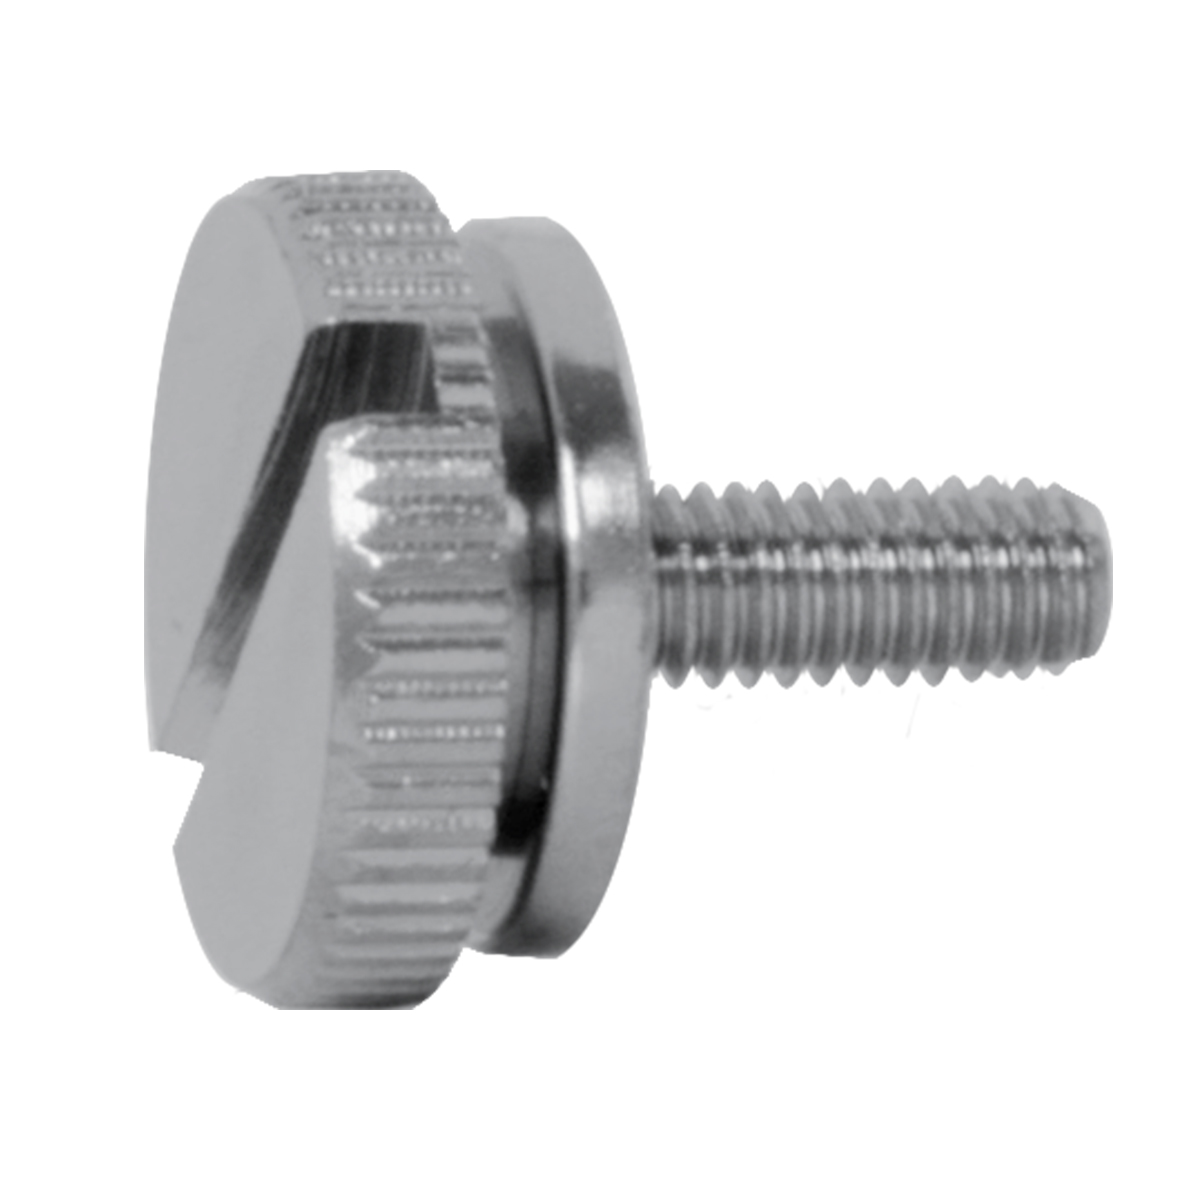 Chrome Plated Steel 4mm C.B. Screw Knobs - Side View